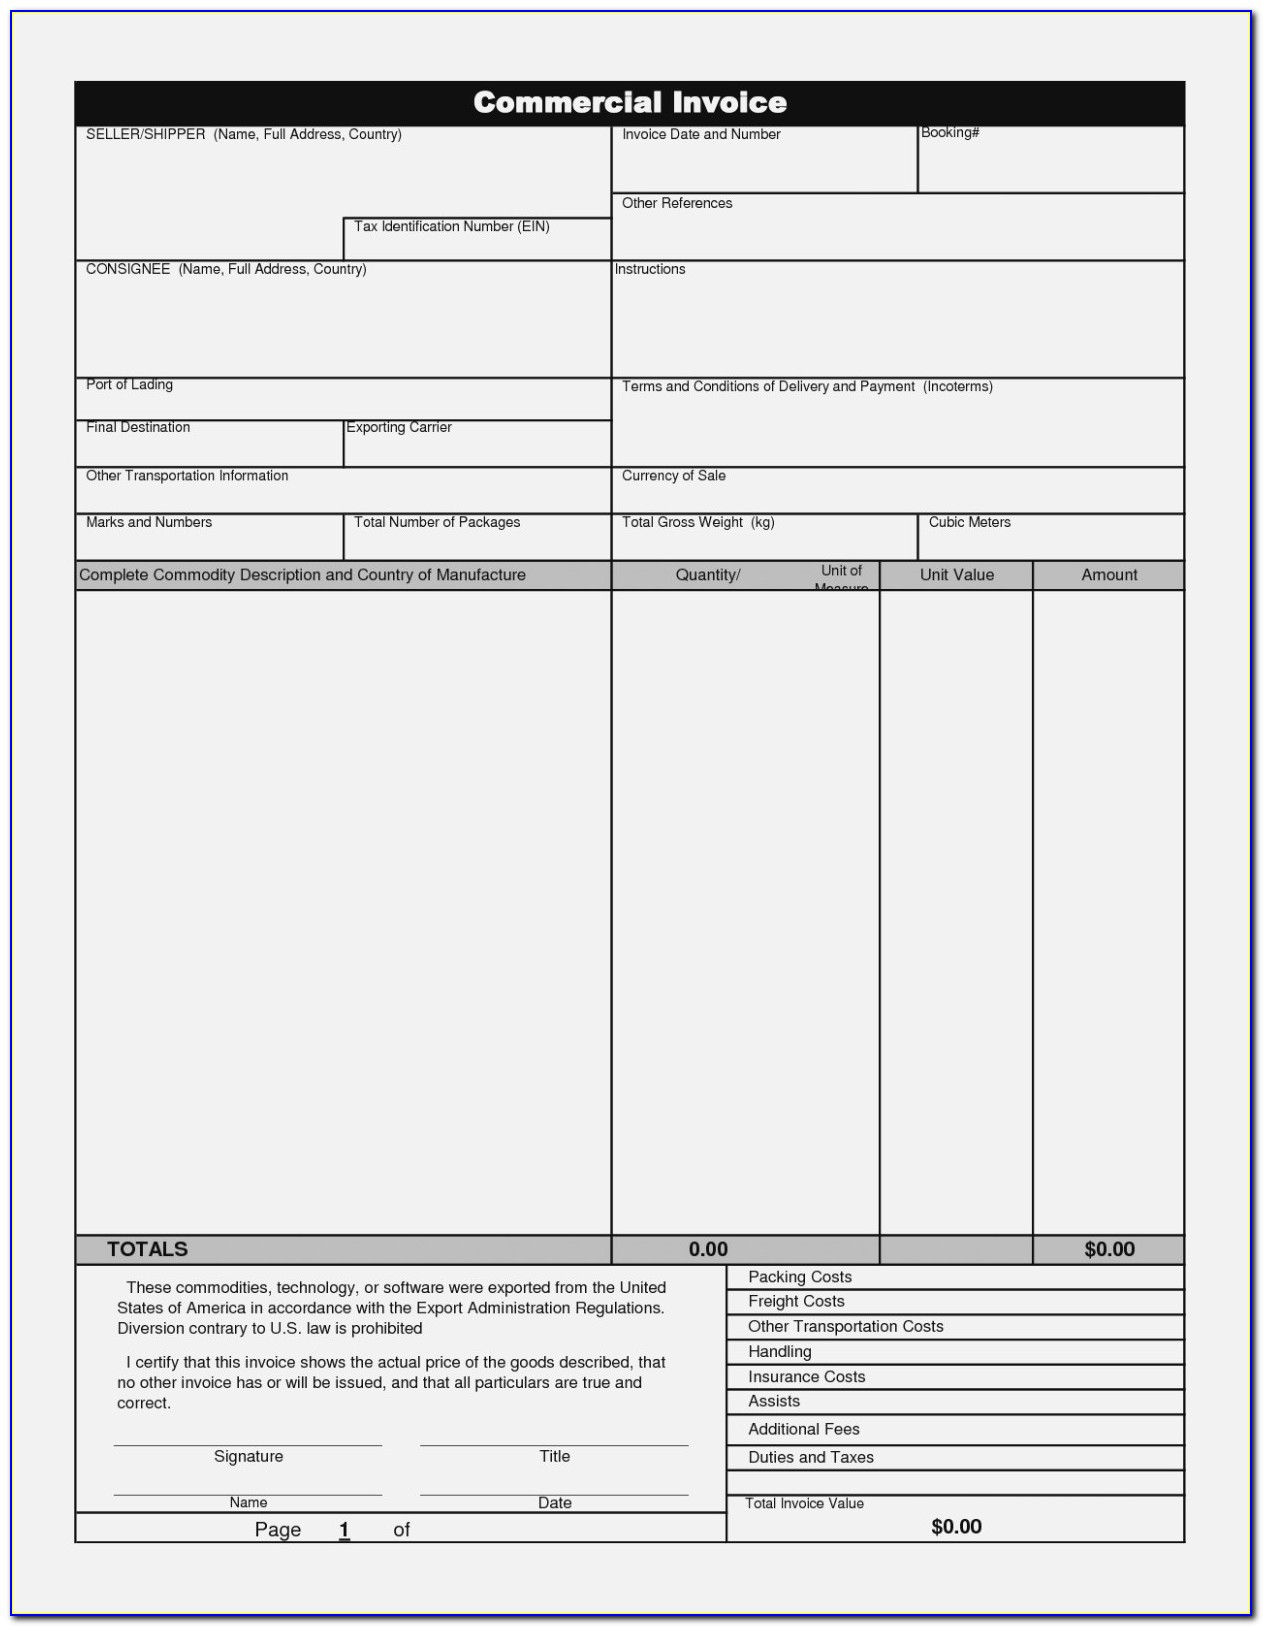 Commercial Invoice Template Excel 2010